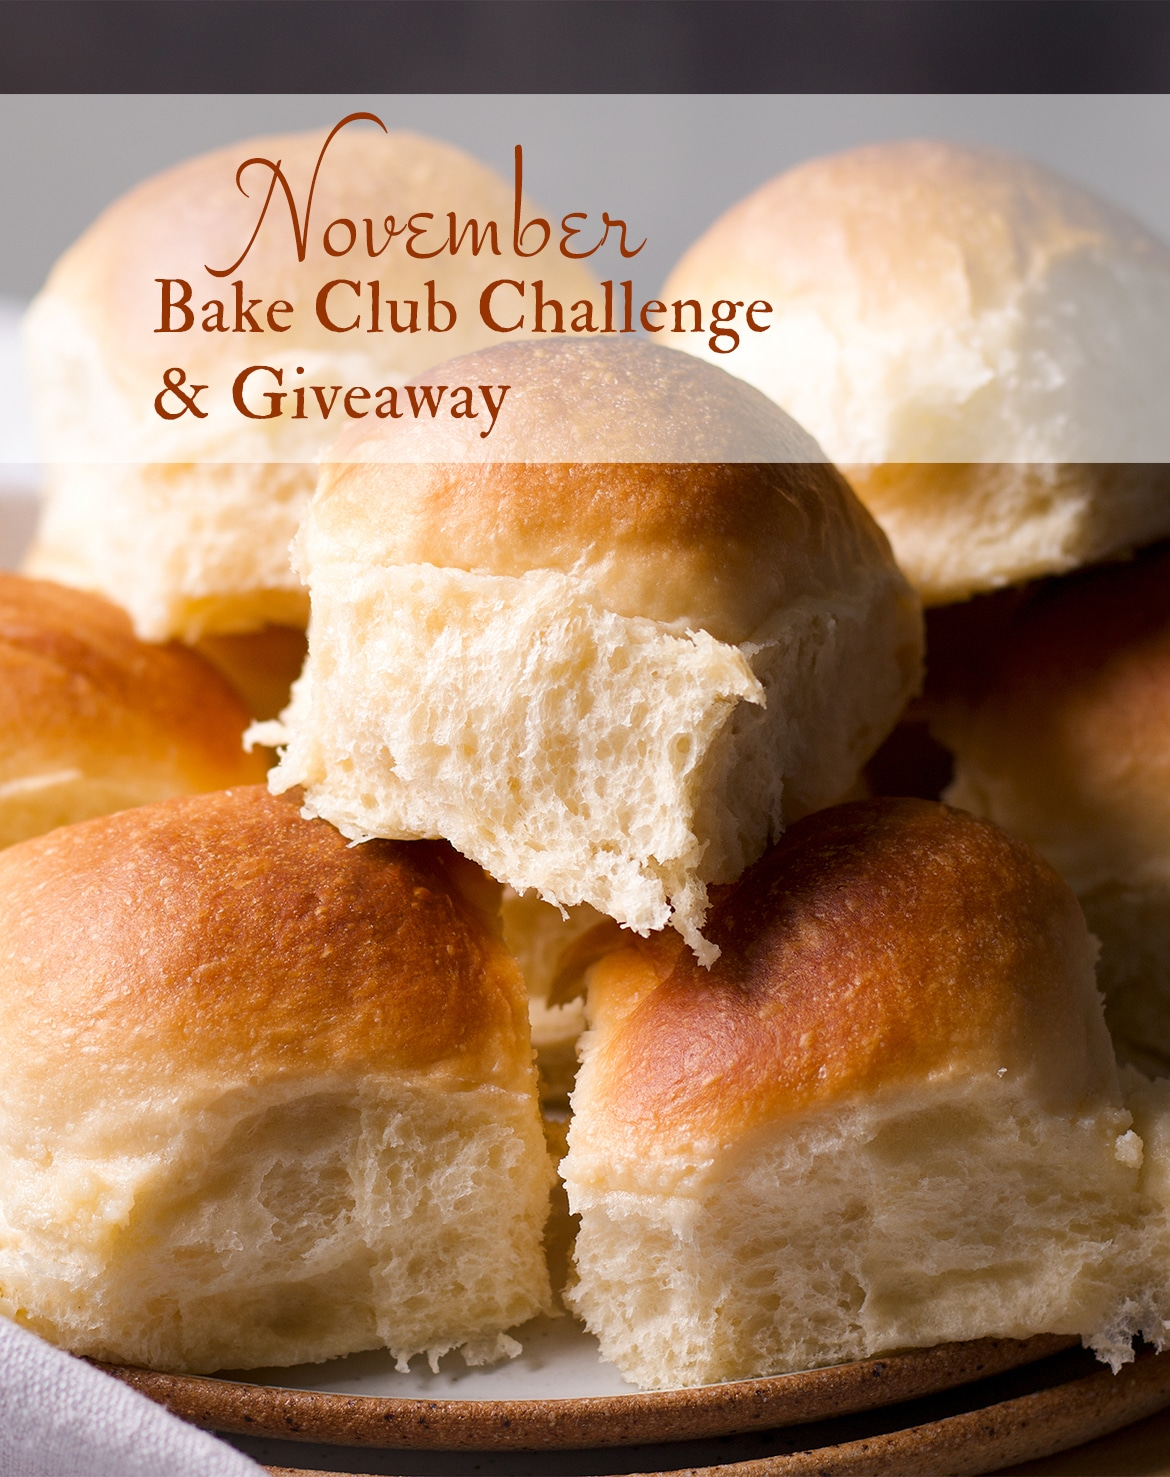 The November Bake Club Challenge recipe is Homemade Dinner Rolls